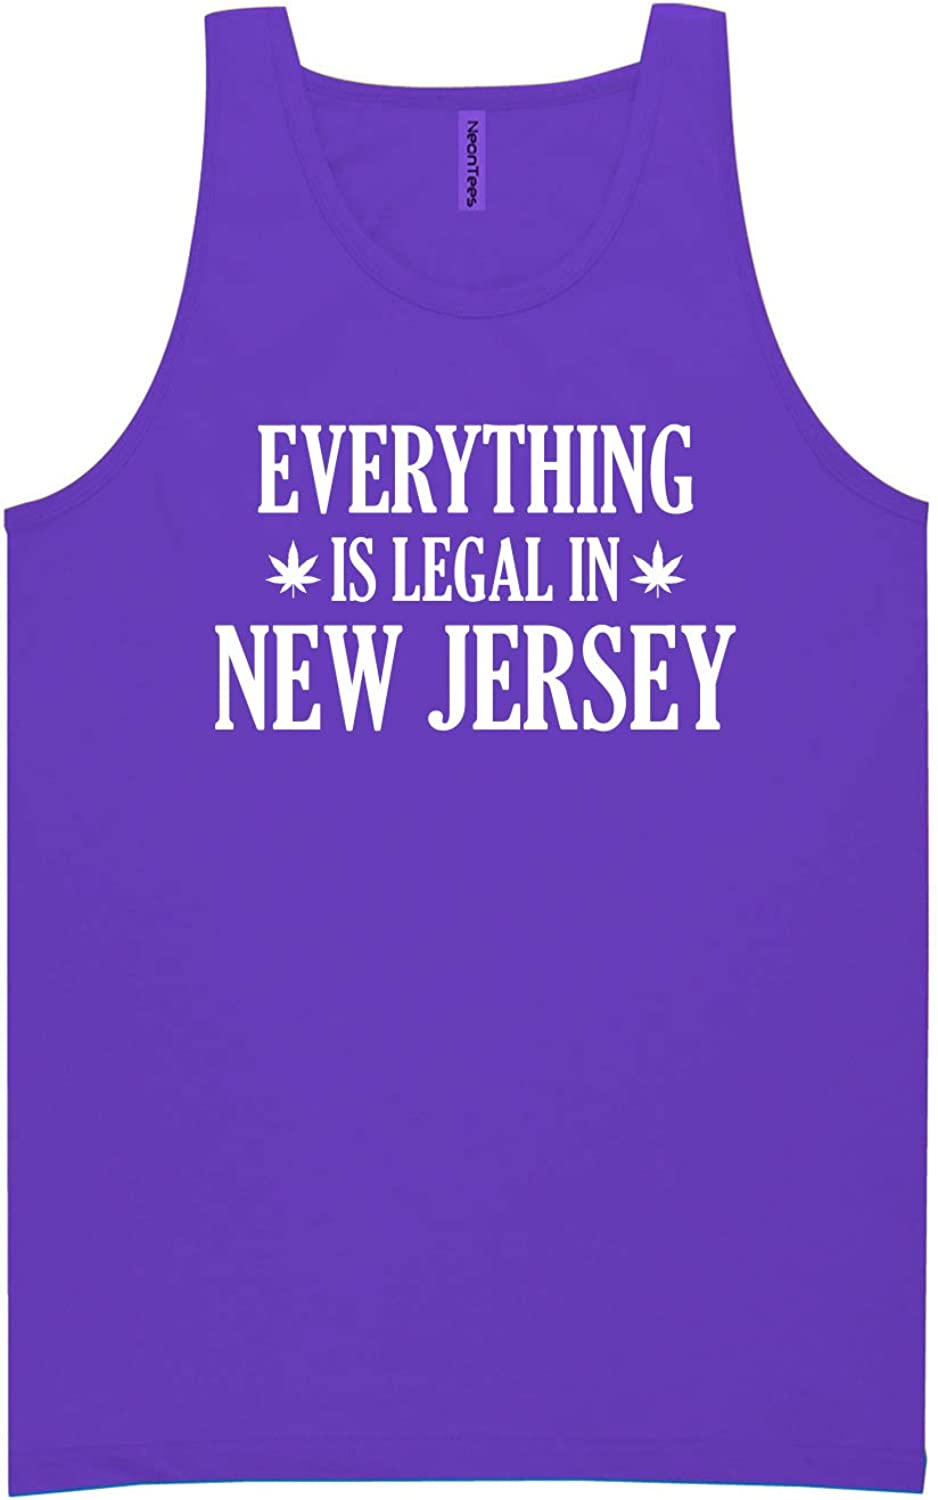 Everything is Legal in New Jersey Neon Purple Tank Top - XX-Large